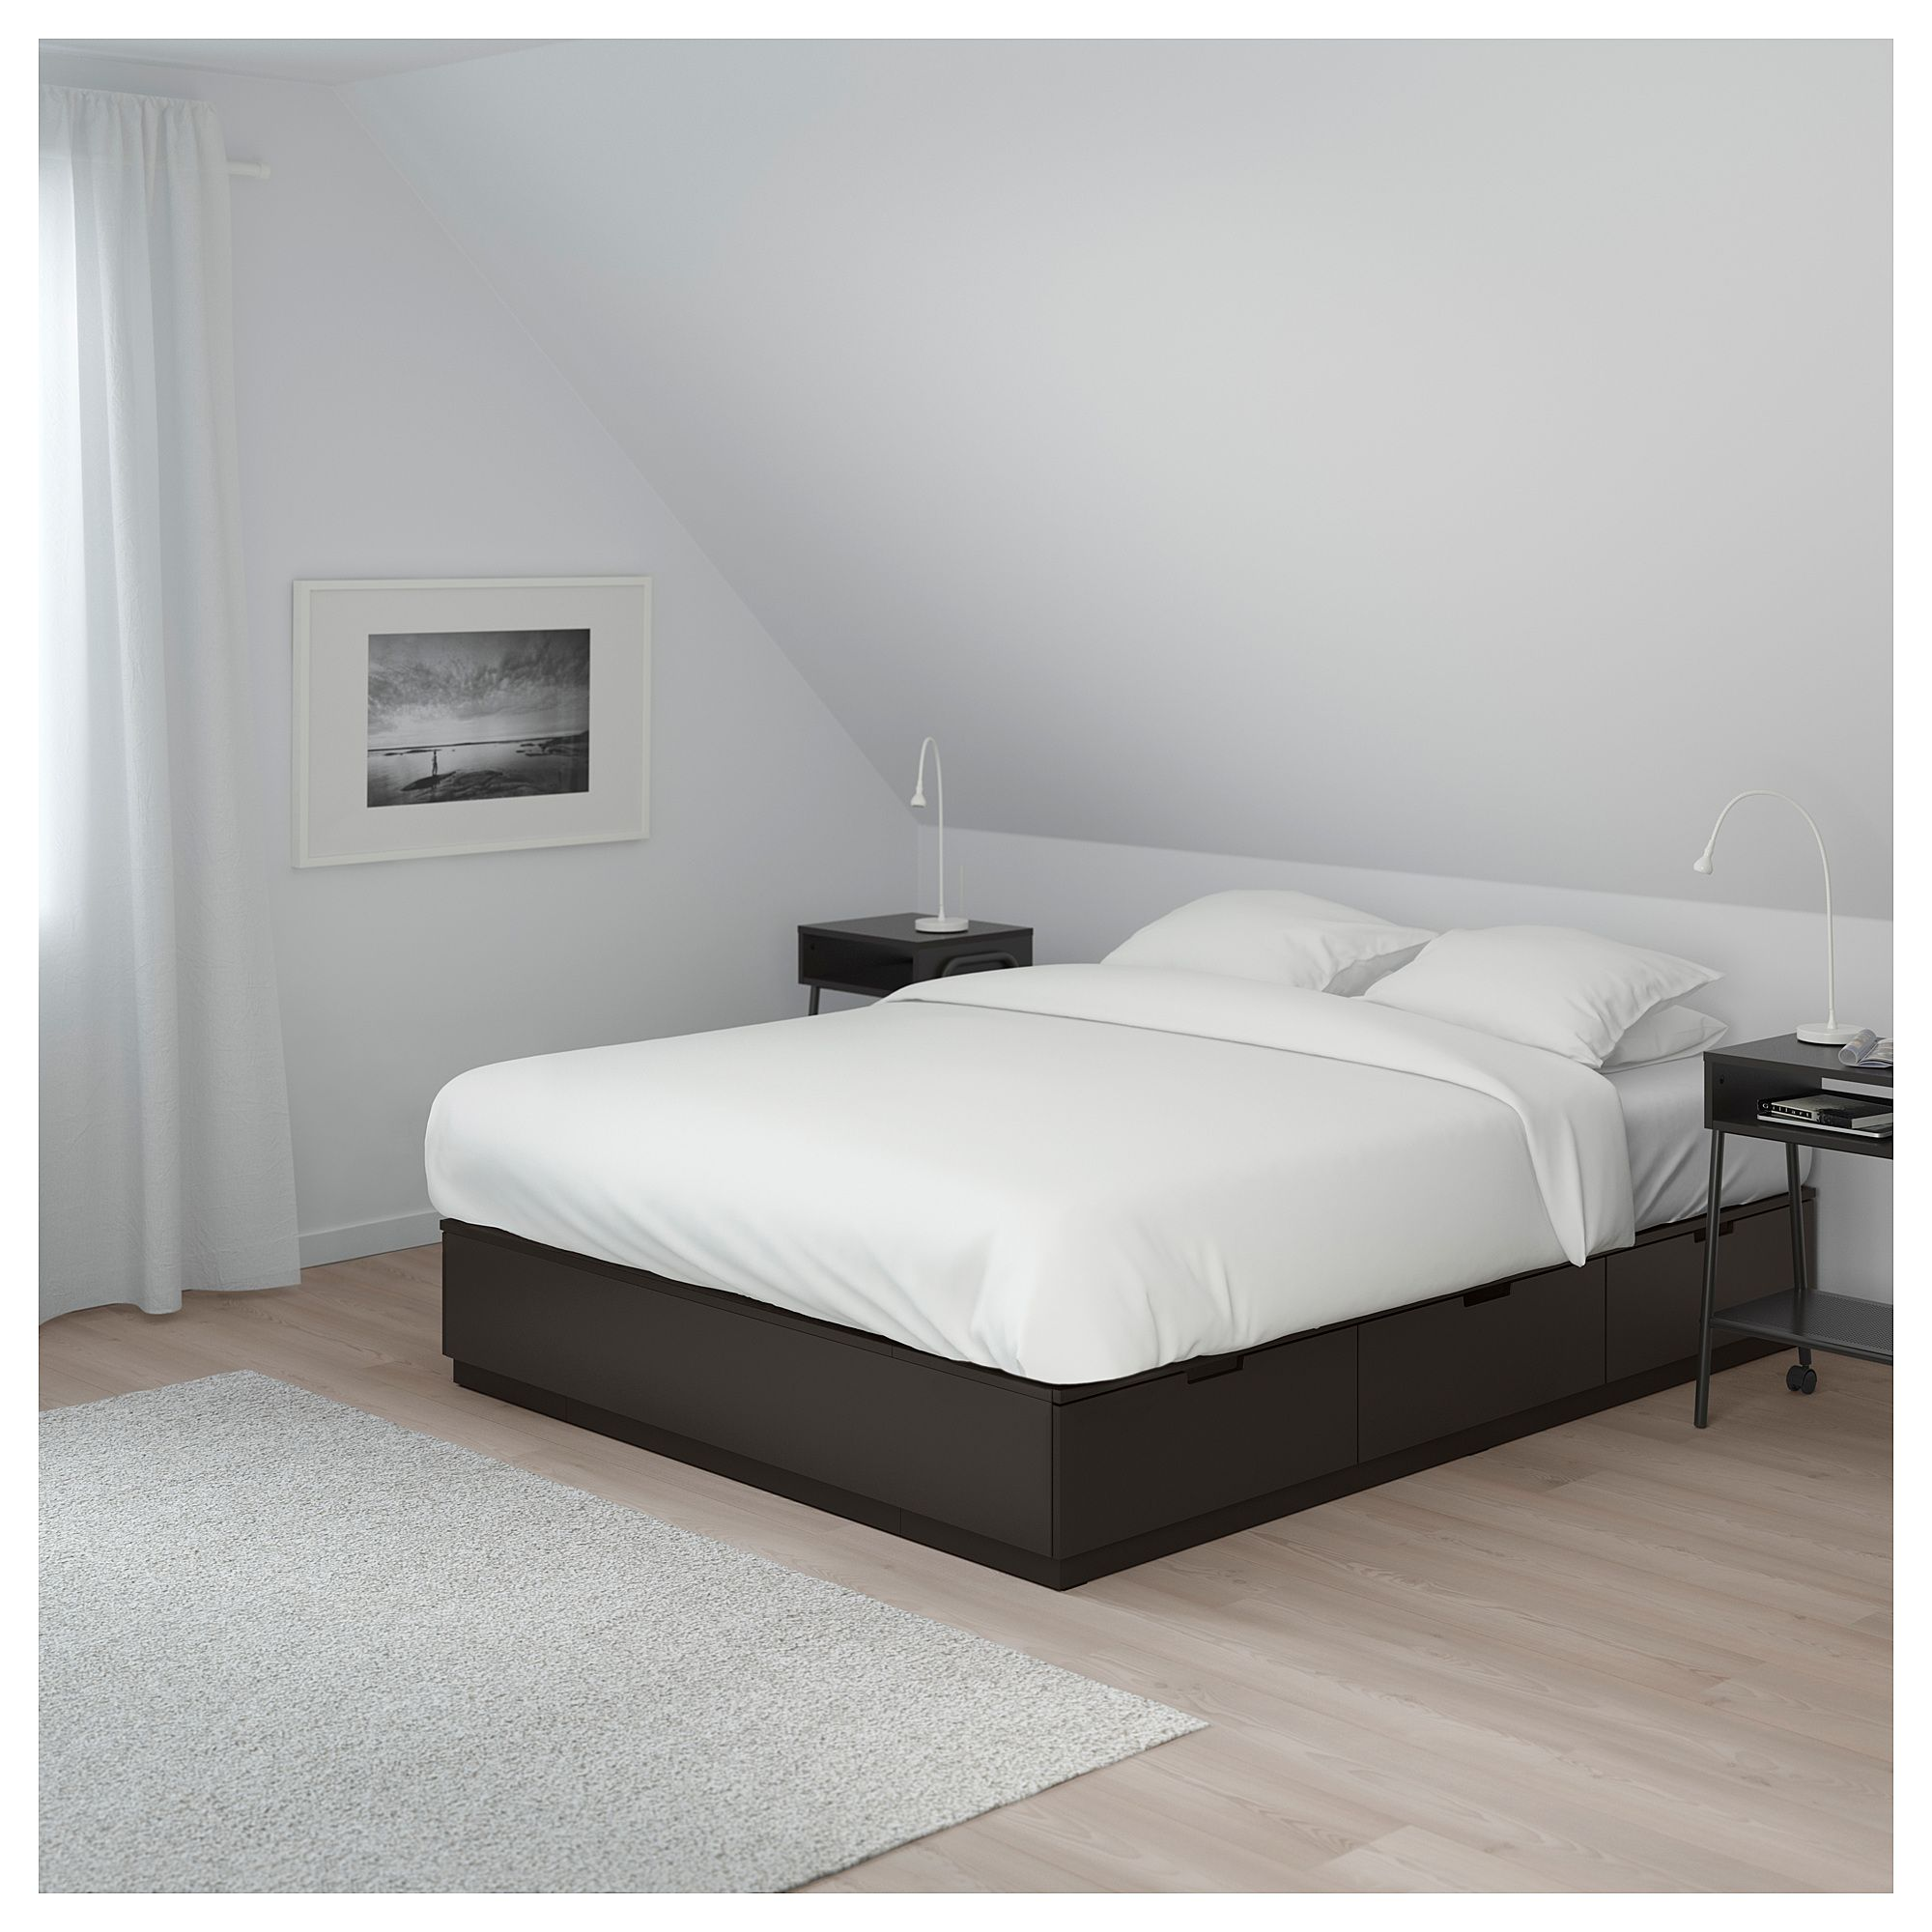 Ikea Brimnes Bett 120x200 Ikea Nordli Bed Frame With Storage Anthracite New Room For